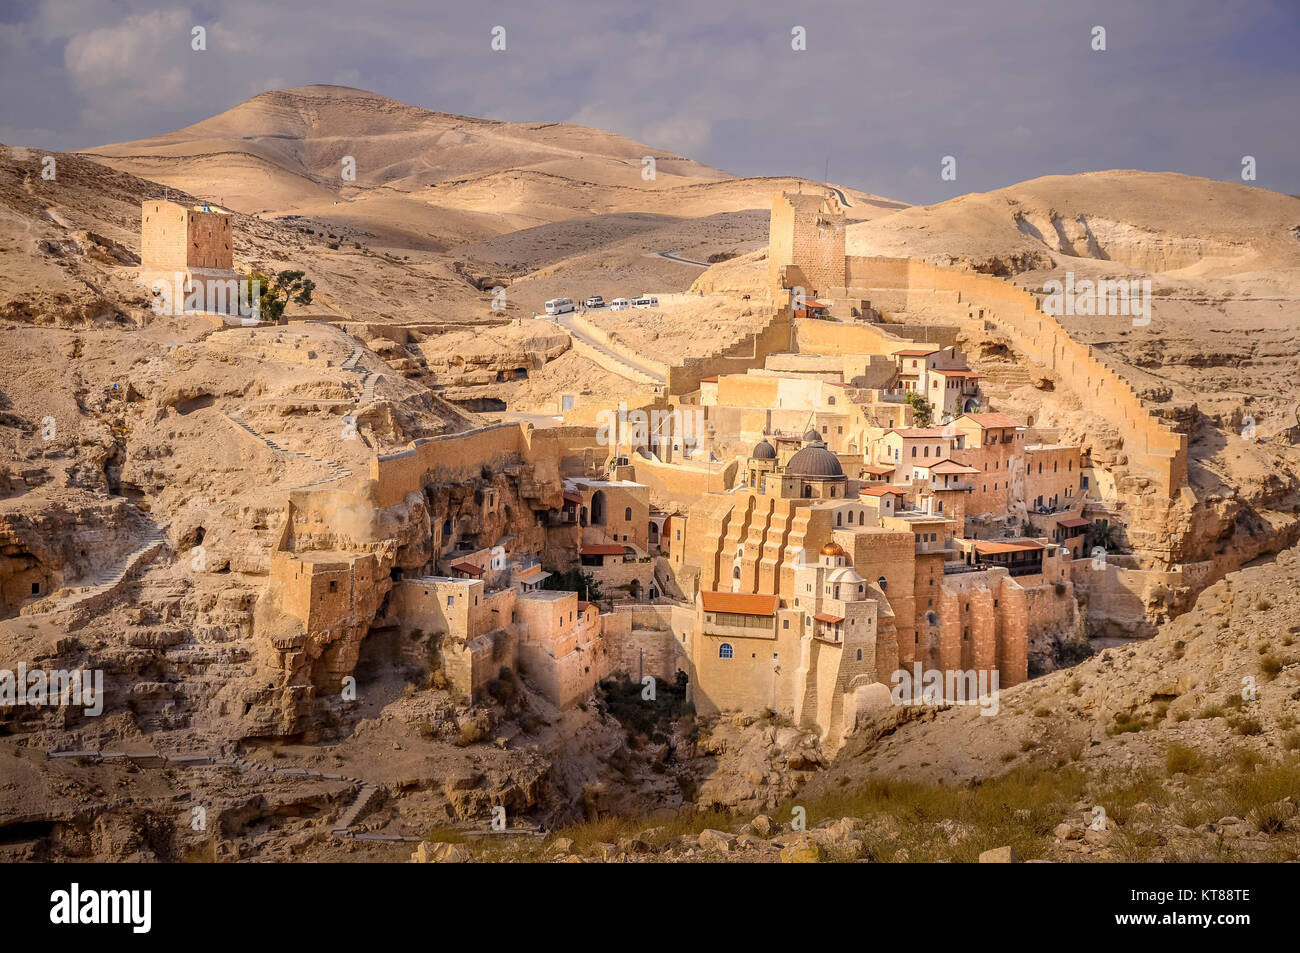 Holy Lavra of Saint Sabbas the Sanctified, known in Arabic as Mar Saba - Stock Image